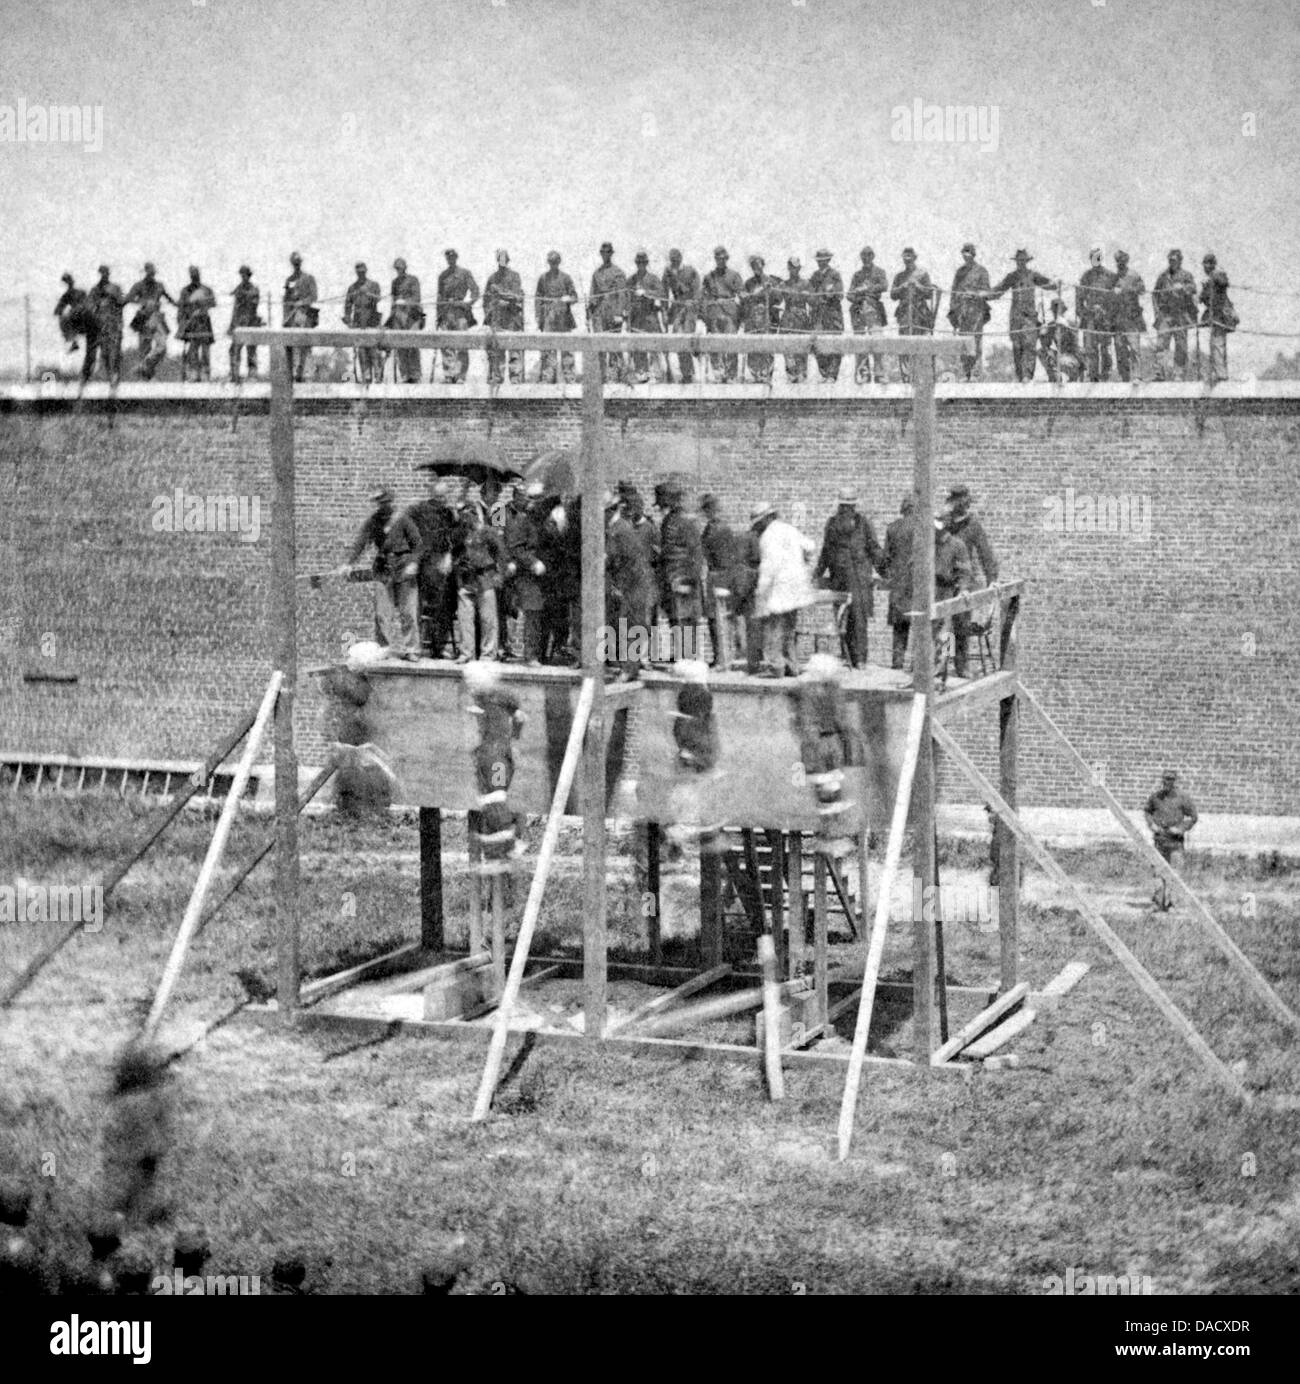 ABRAHAM LINCOLN  Execution of accomplices in his murder at Fort McNair, Washington D.C. 7 July 1865. See Description - Stock Image